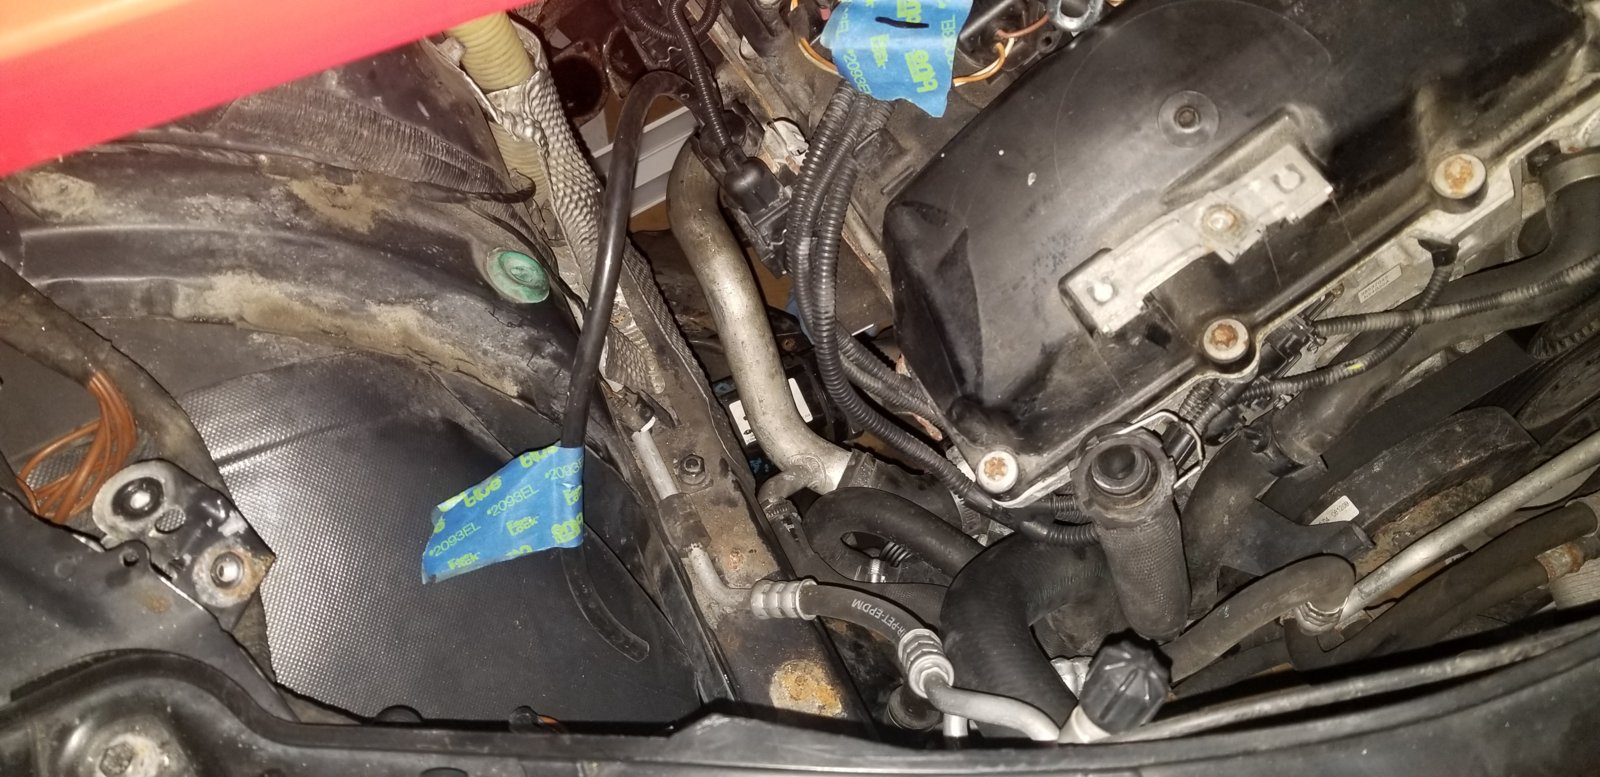 replacing twins- to lower subframe or remove completely